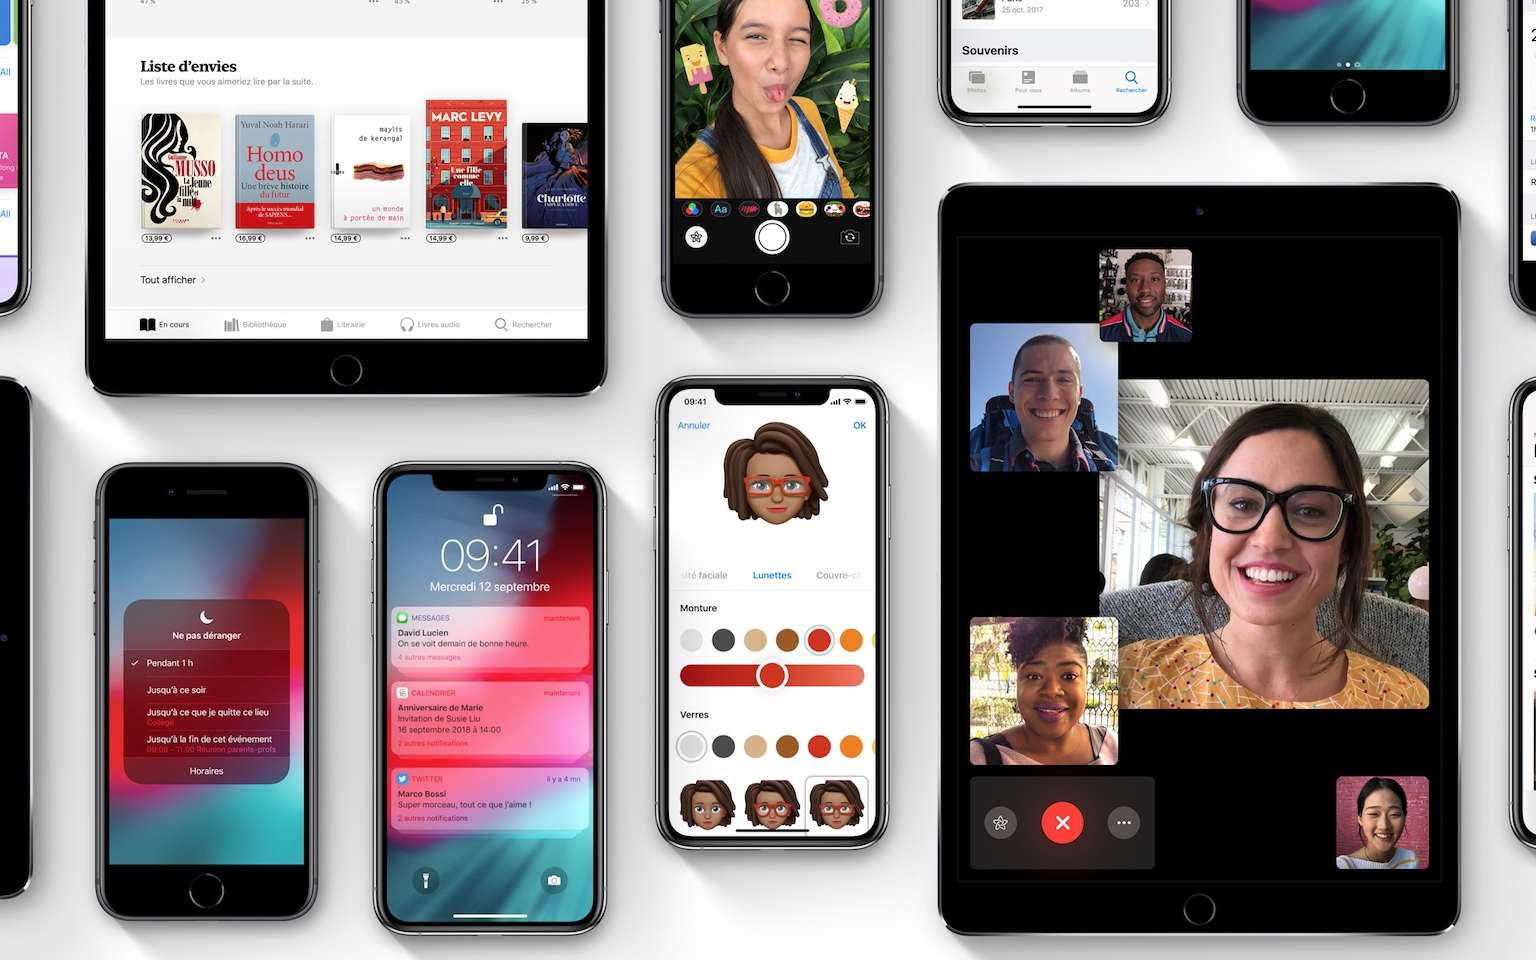 Captures d'écran d'iOS 12, le nouvel OS pour iPhone, iPad et iPod Touch sorti officiellement le 17 septembre 2018. © Apple